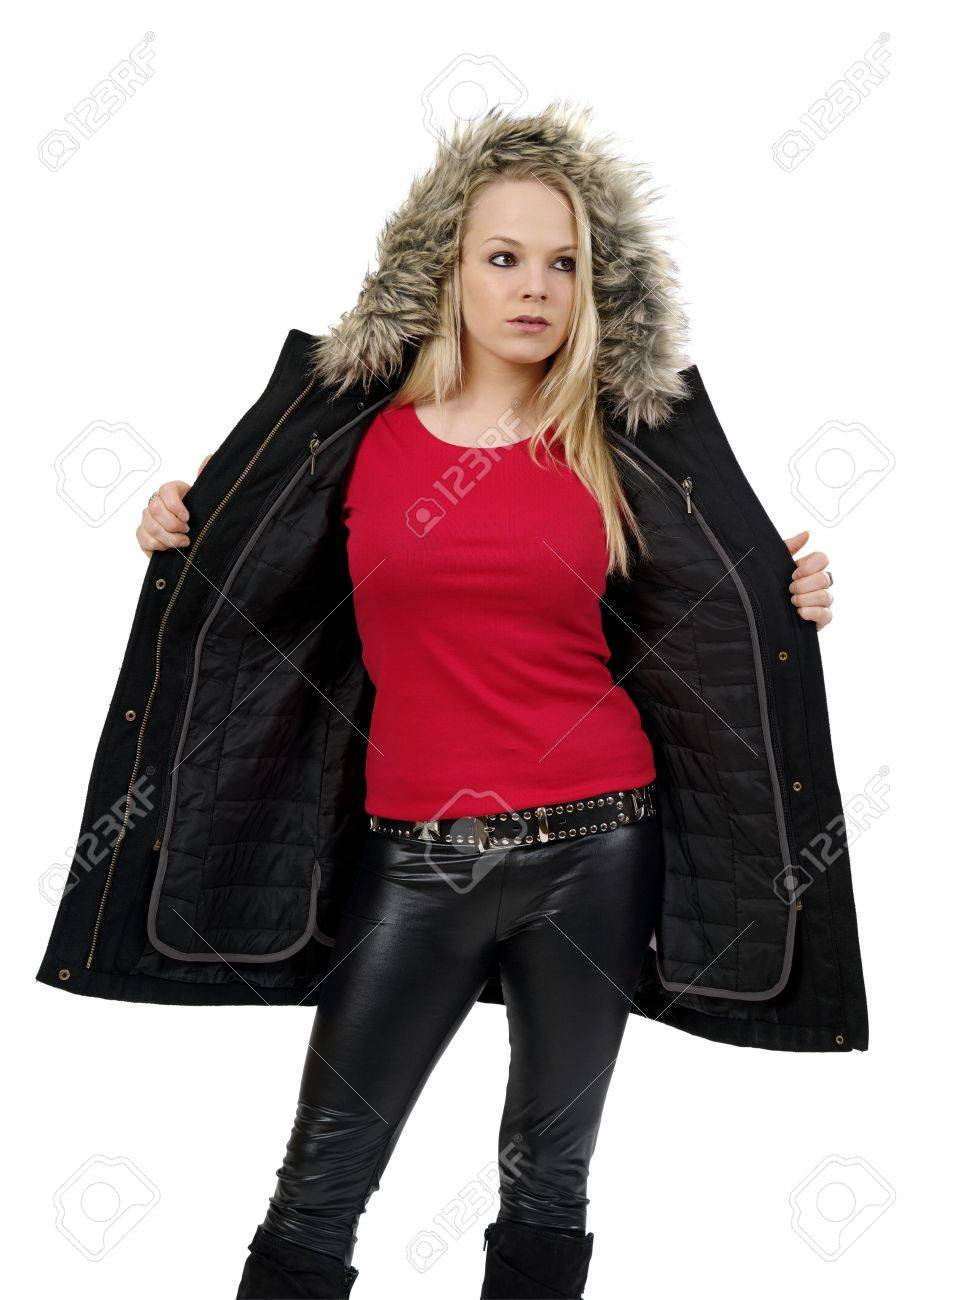 ea1eb8c7 Stock Photo - Young beautiful blond female opening her winter jacket to  show the blank red t-shirt she is wearing. Ready for your design or artwork.